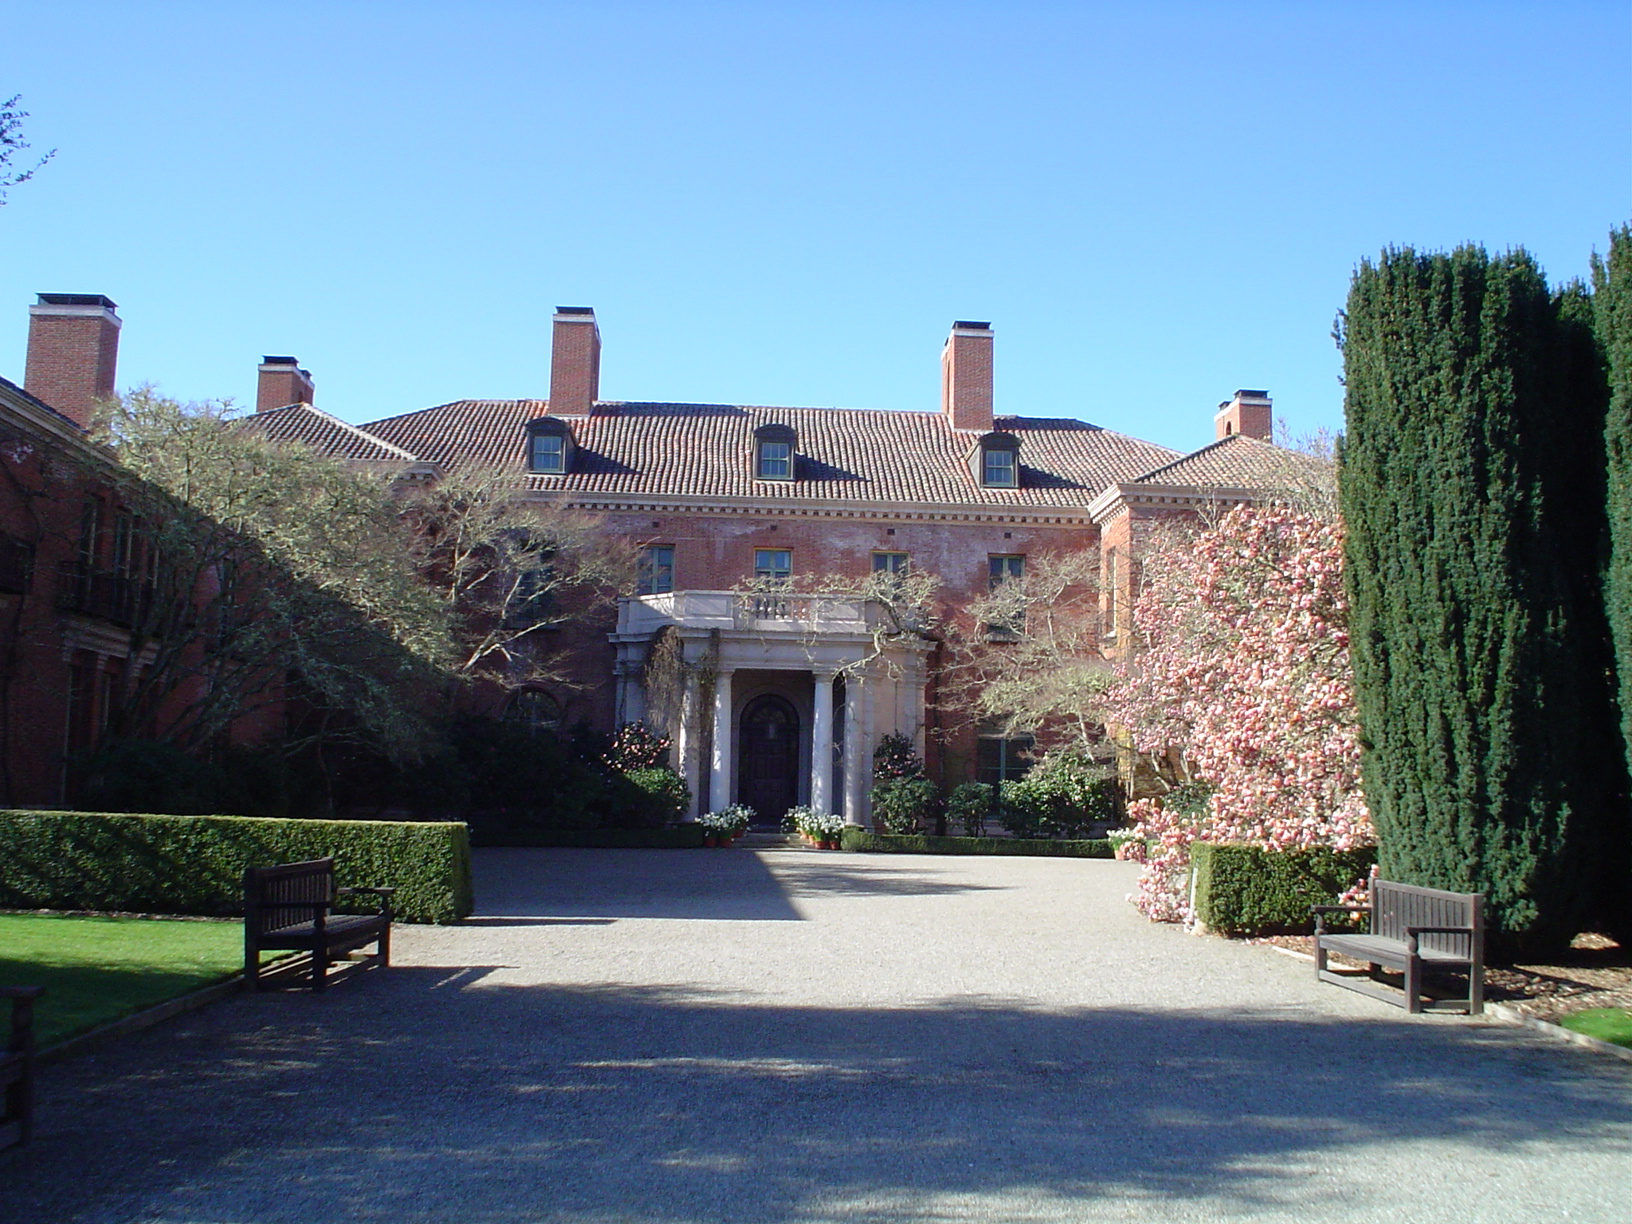 Filoli wikipedia - House of tv show ...